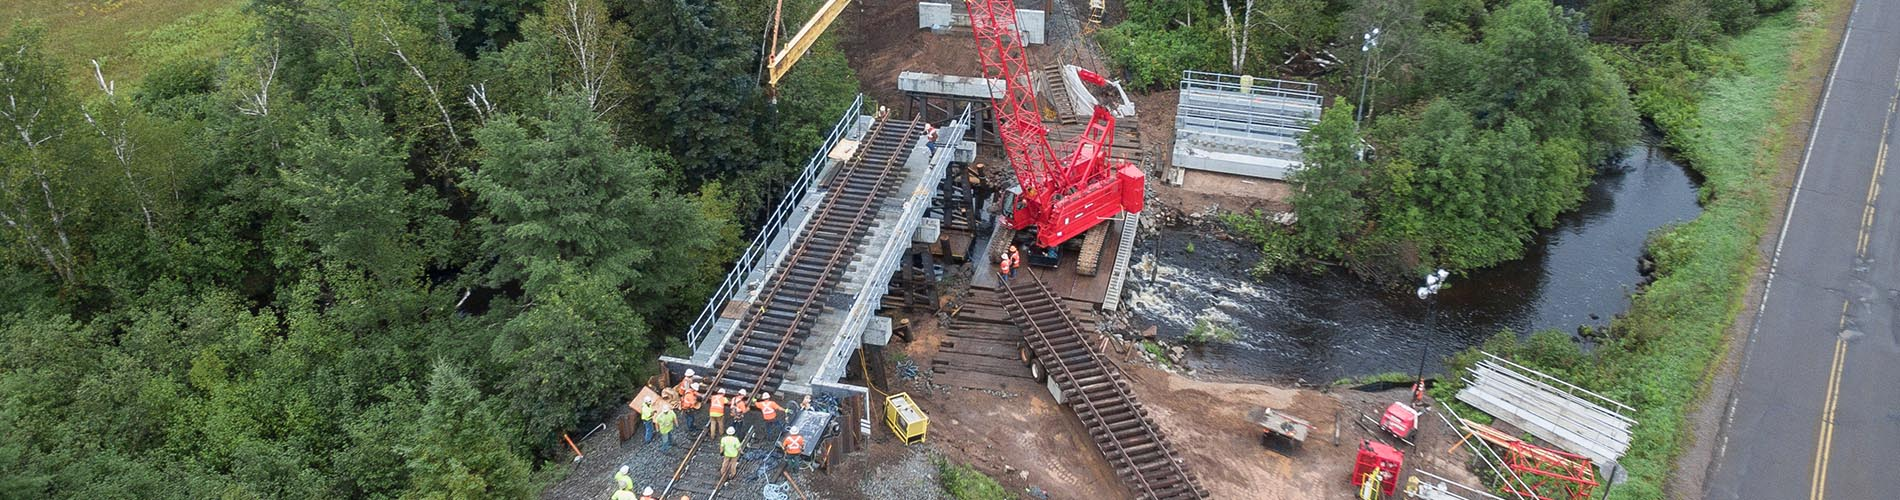 railroad construction services, railroad contractors, bridge replacements, bridge repairs, railroad bridge repairs, derailment assists, derailment cleanups,